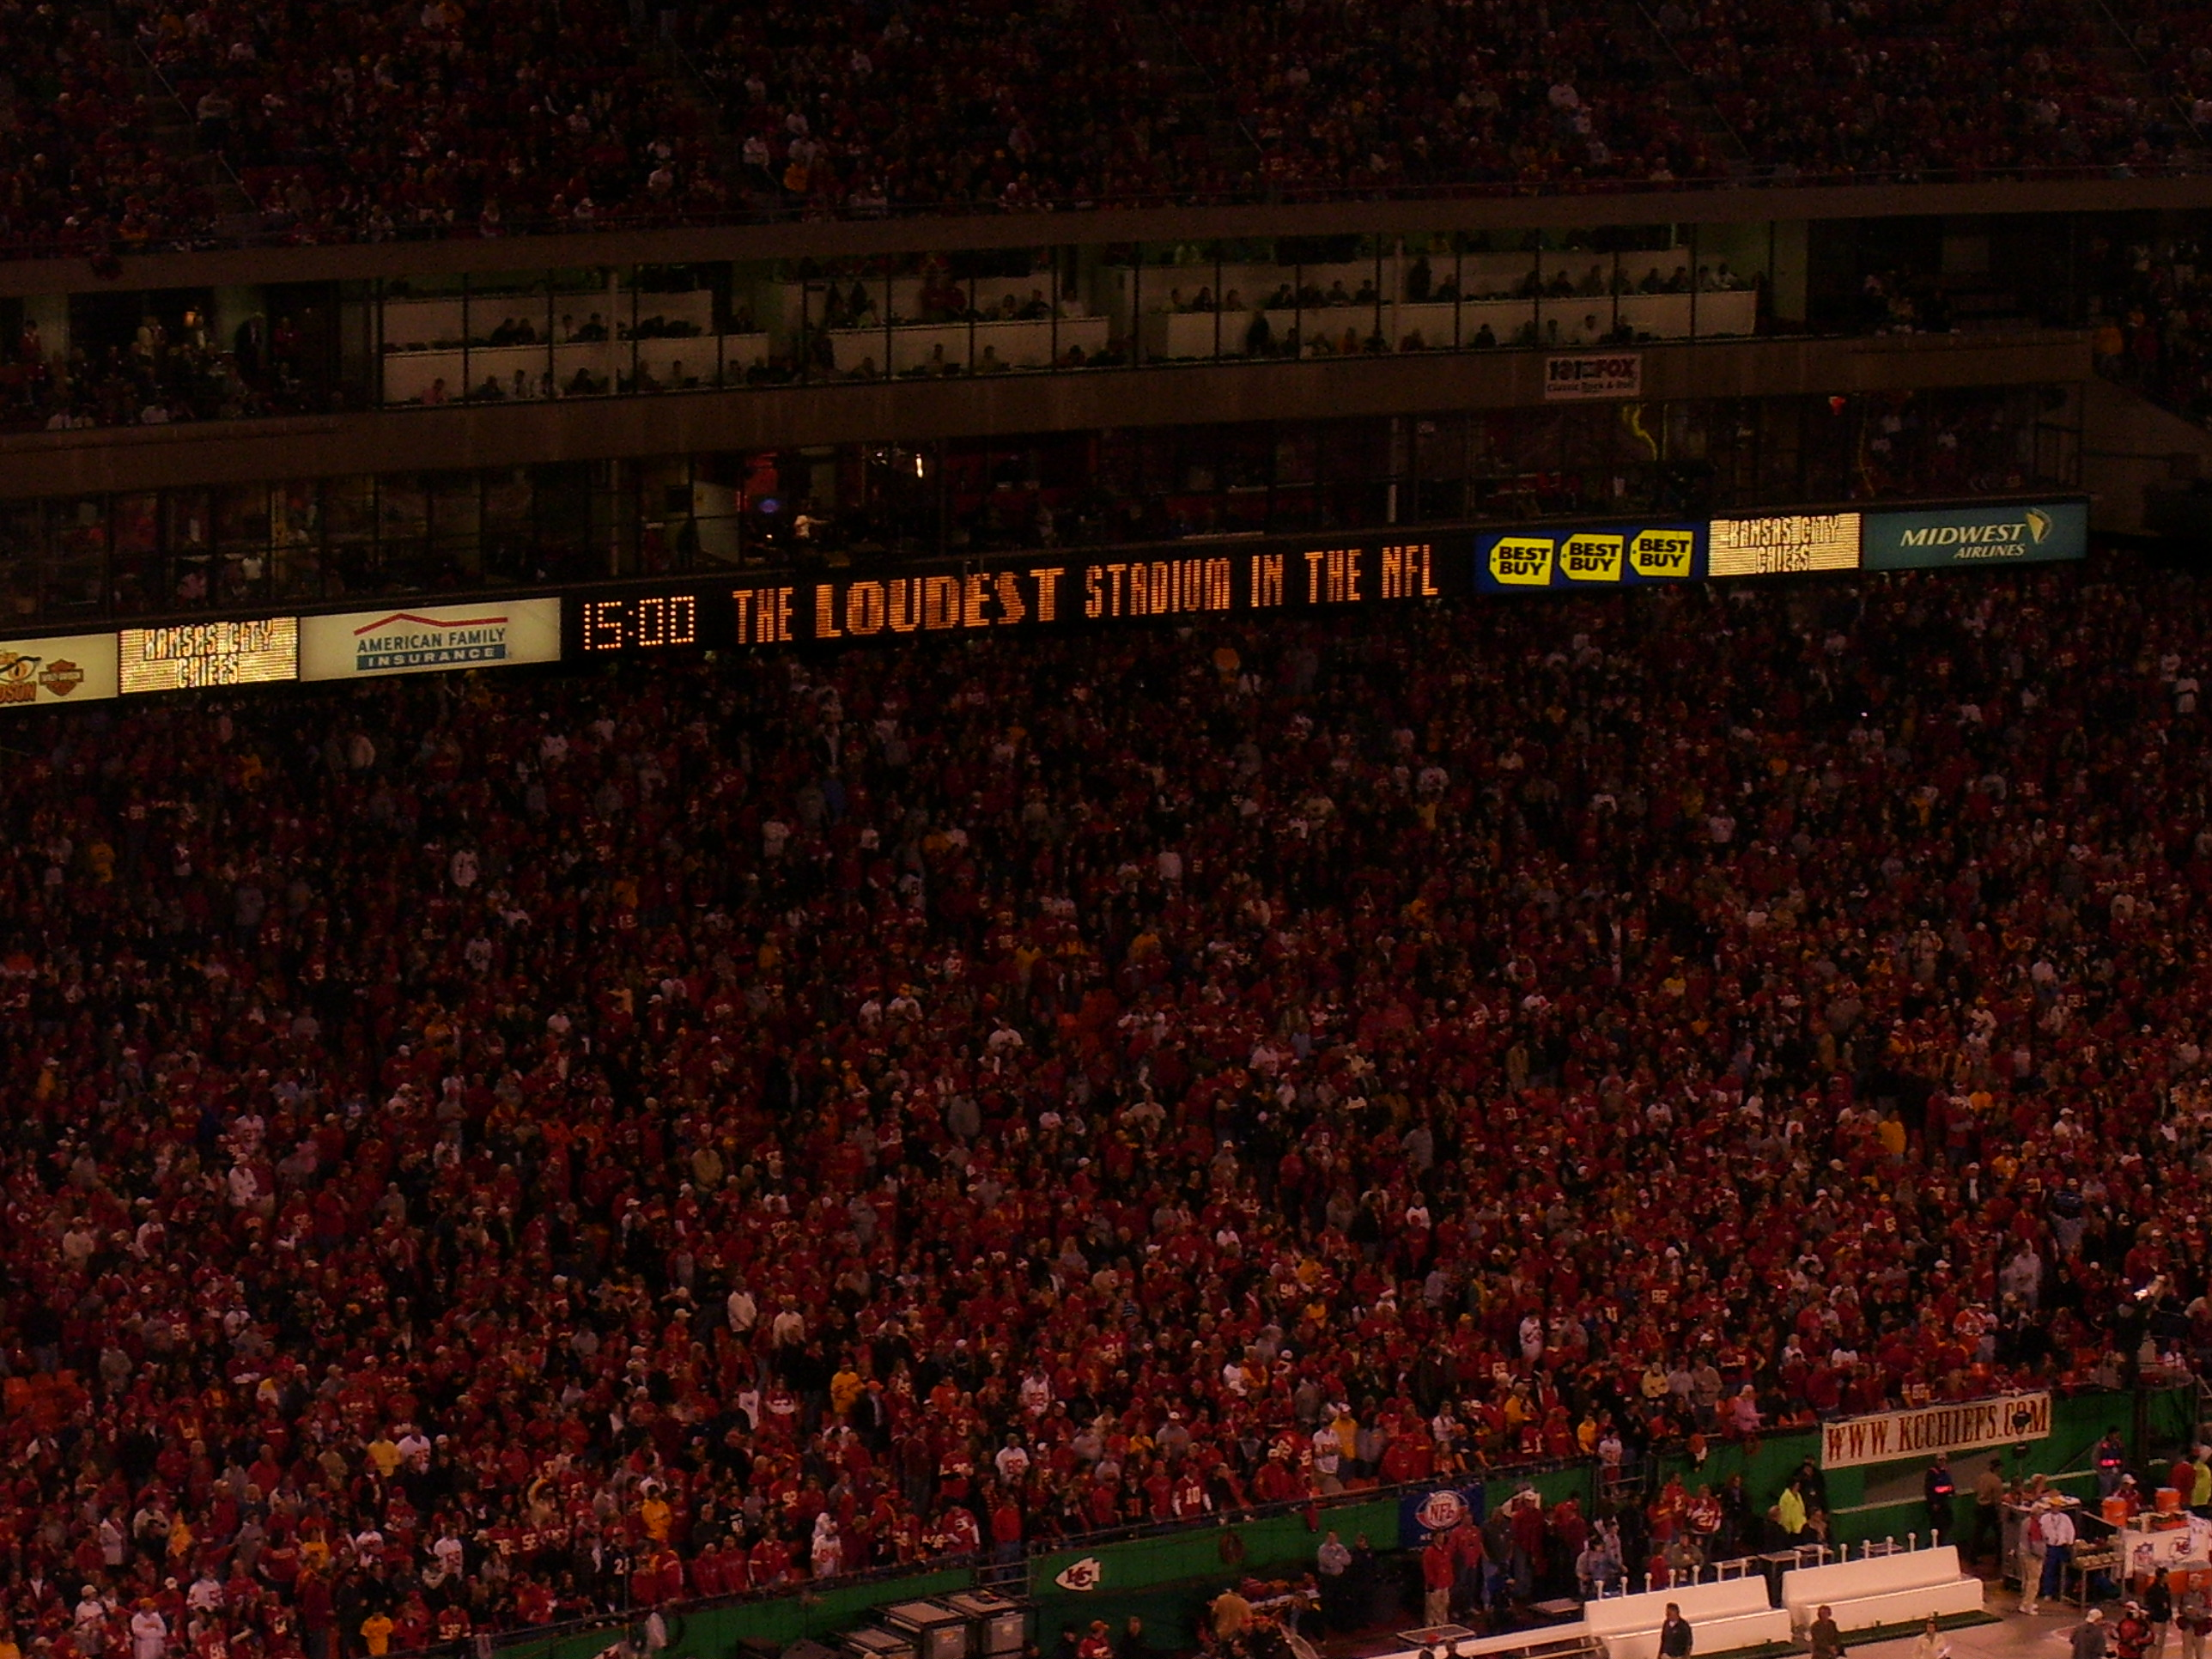 Since September 2014, Chiefs fans have been recognized by Guinness World Records as the loudest fan base in the world among outdoor stadiums.